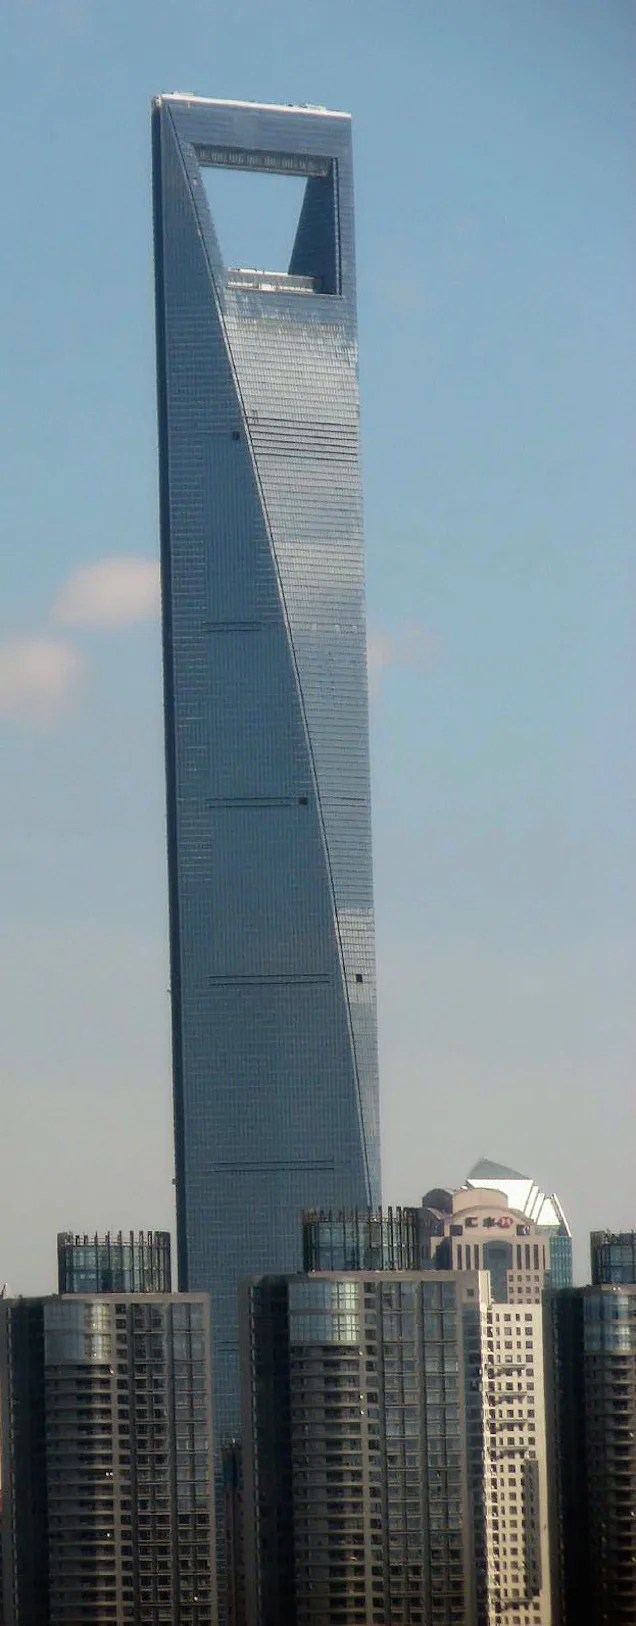 Crazy winds throw window cleaners for a scary swing ride on 91st floor